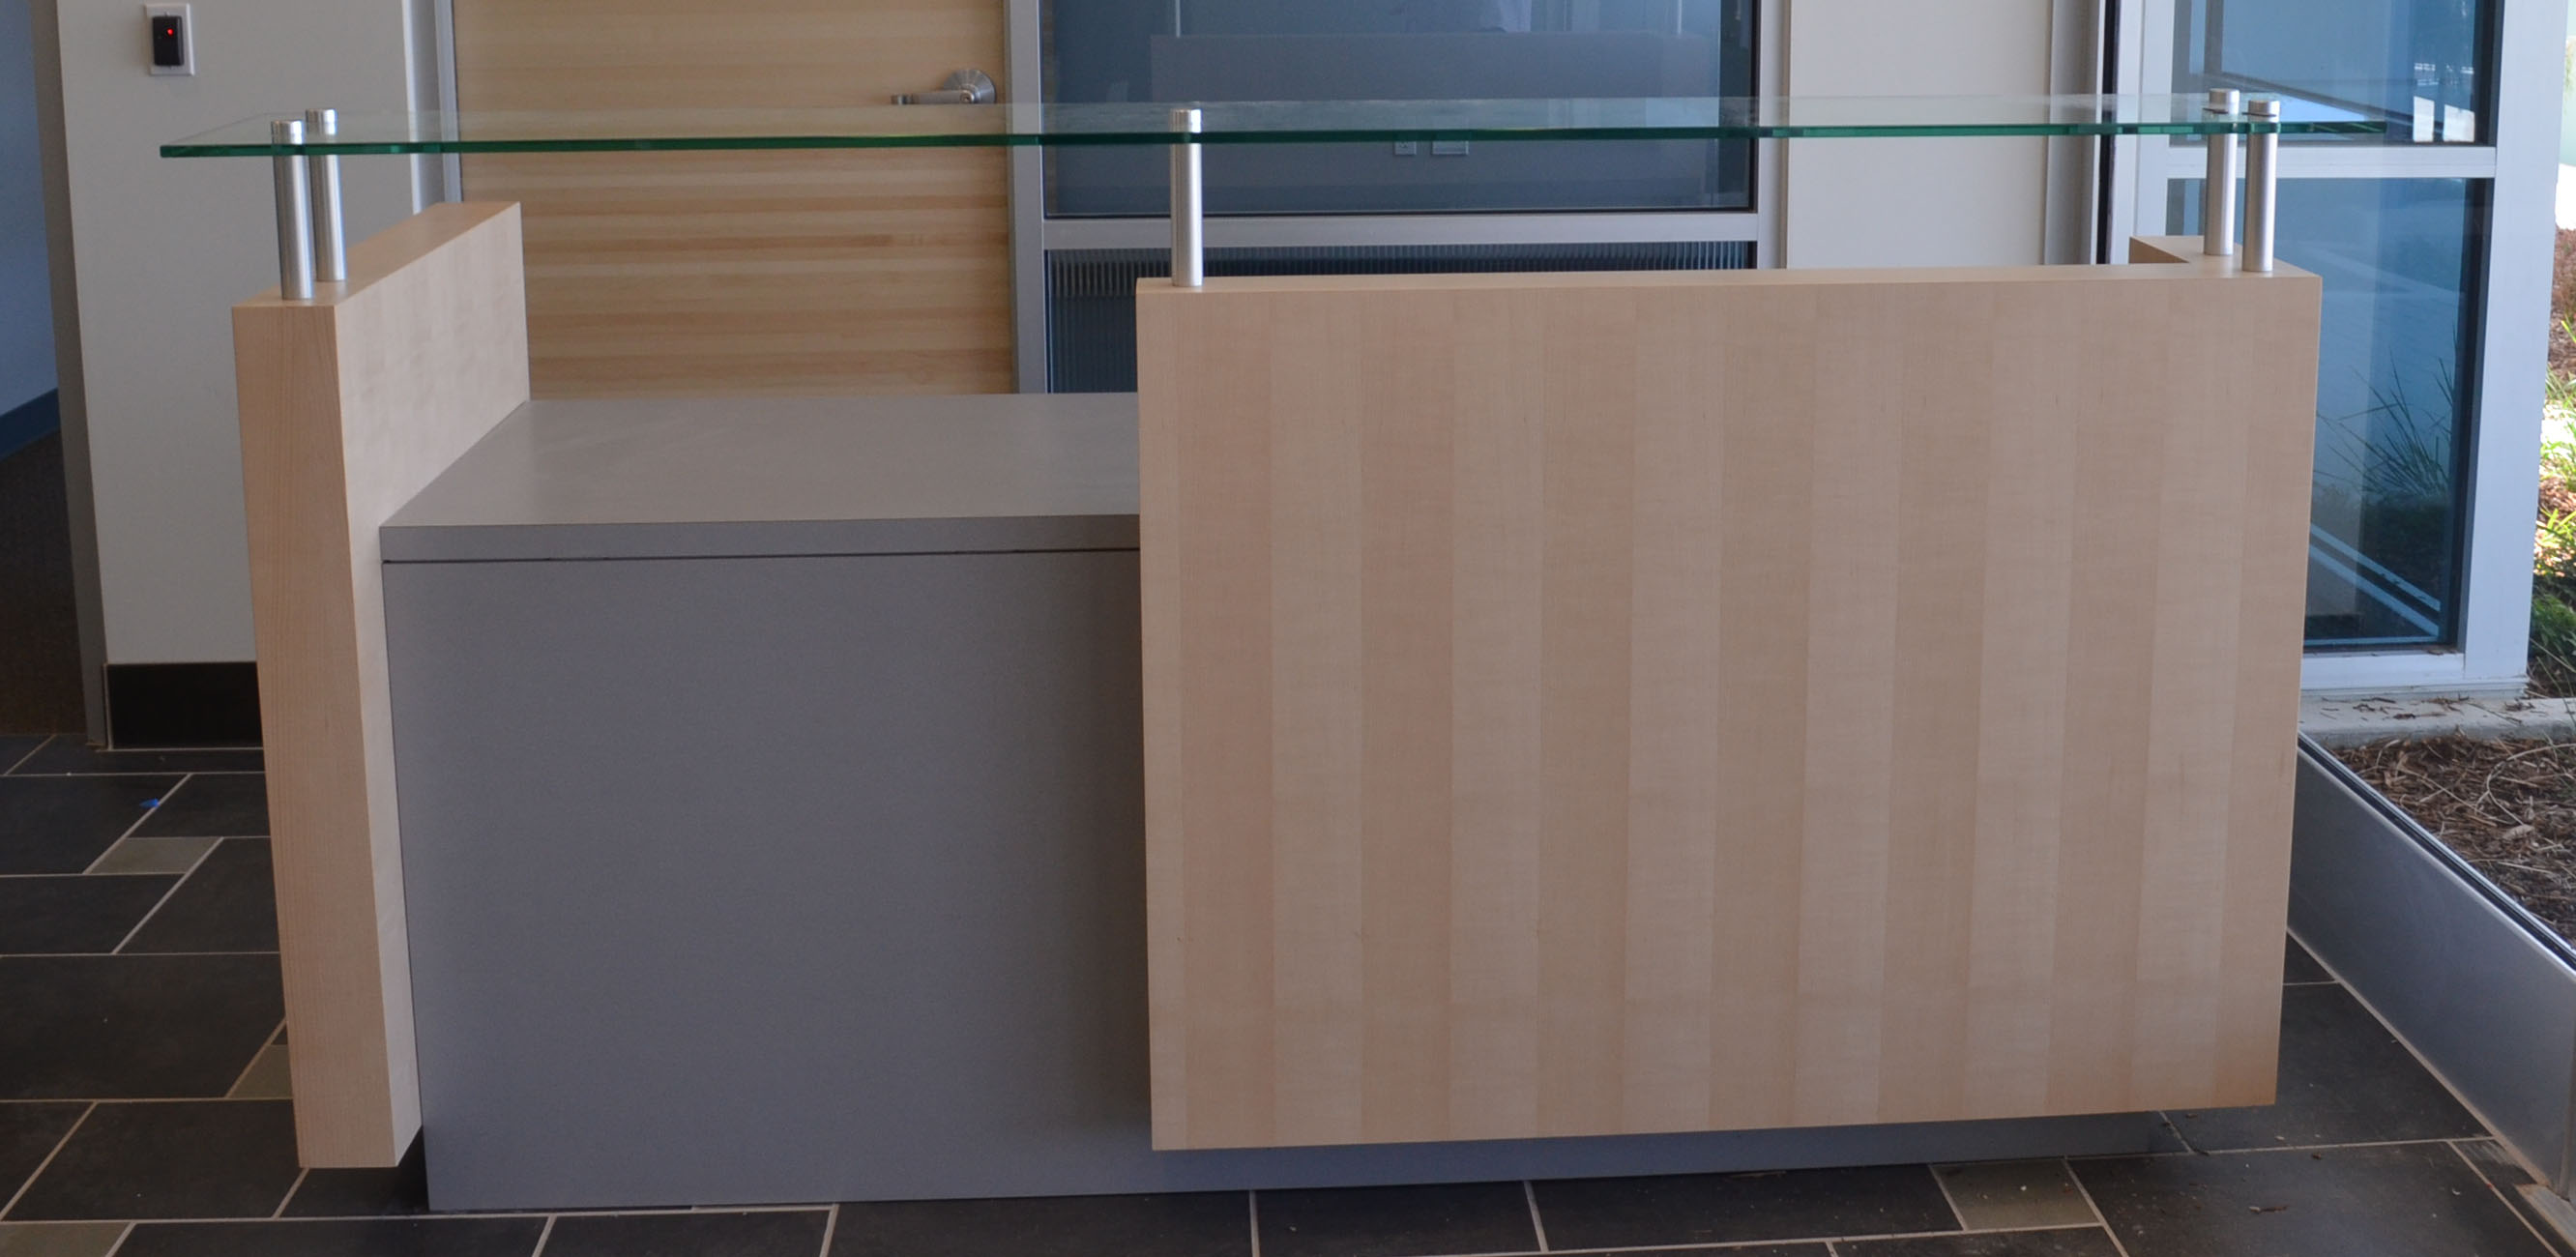 build a reception desk plans | Quick Woodworking Projects